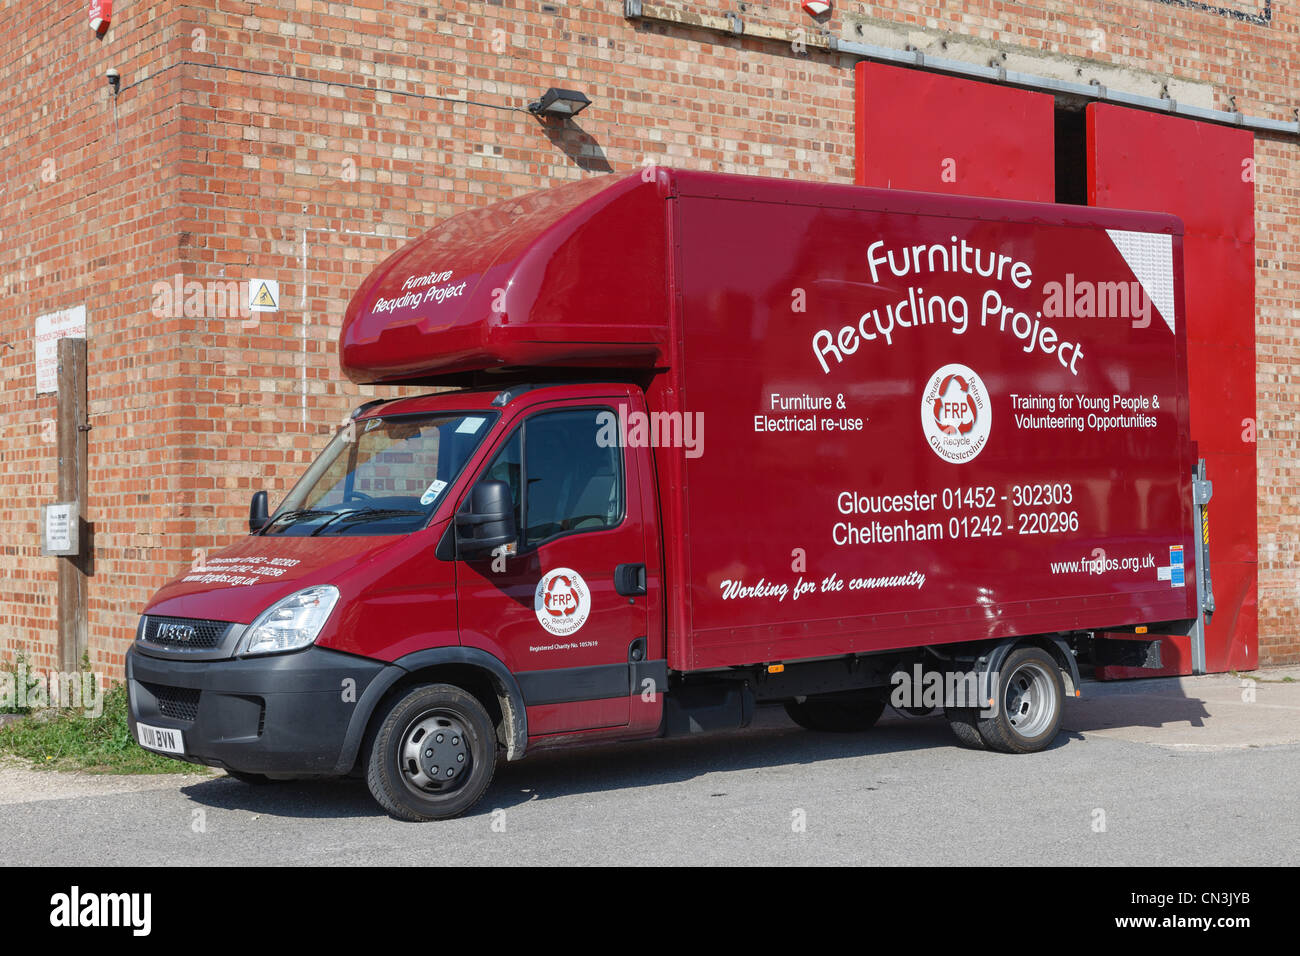 Gloucester, Gloucestershire, England, UK. Furniture Recycling Project  Removal Van Outside The Warehouse